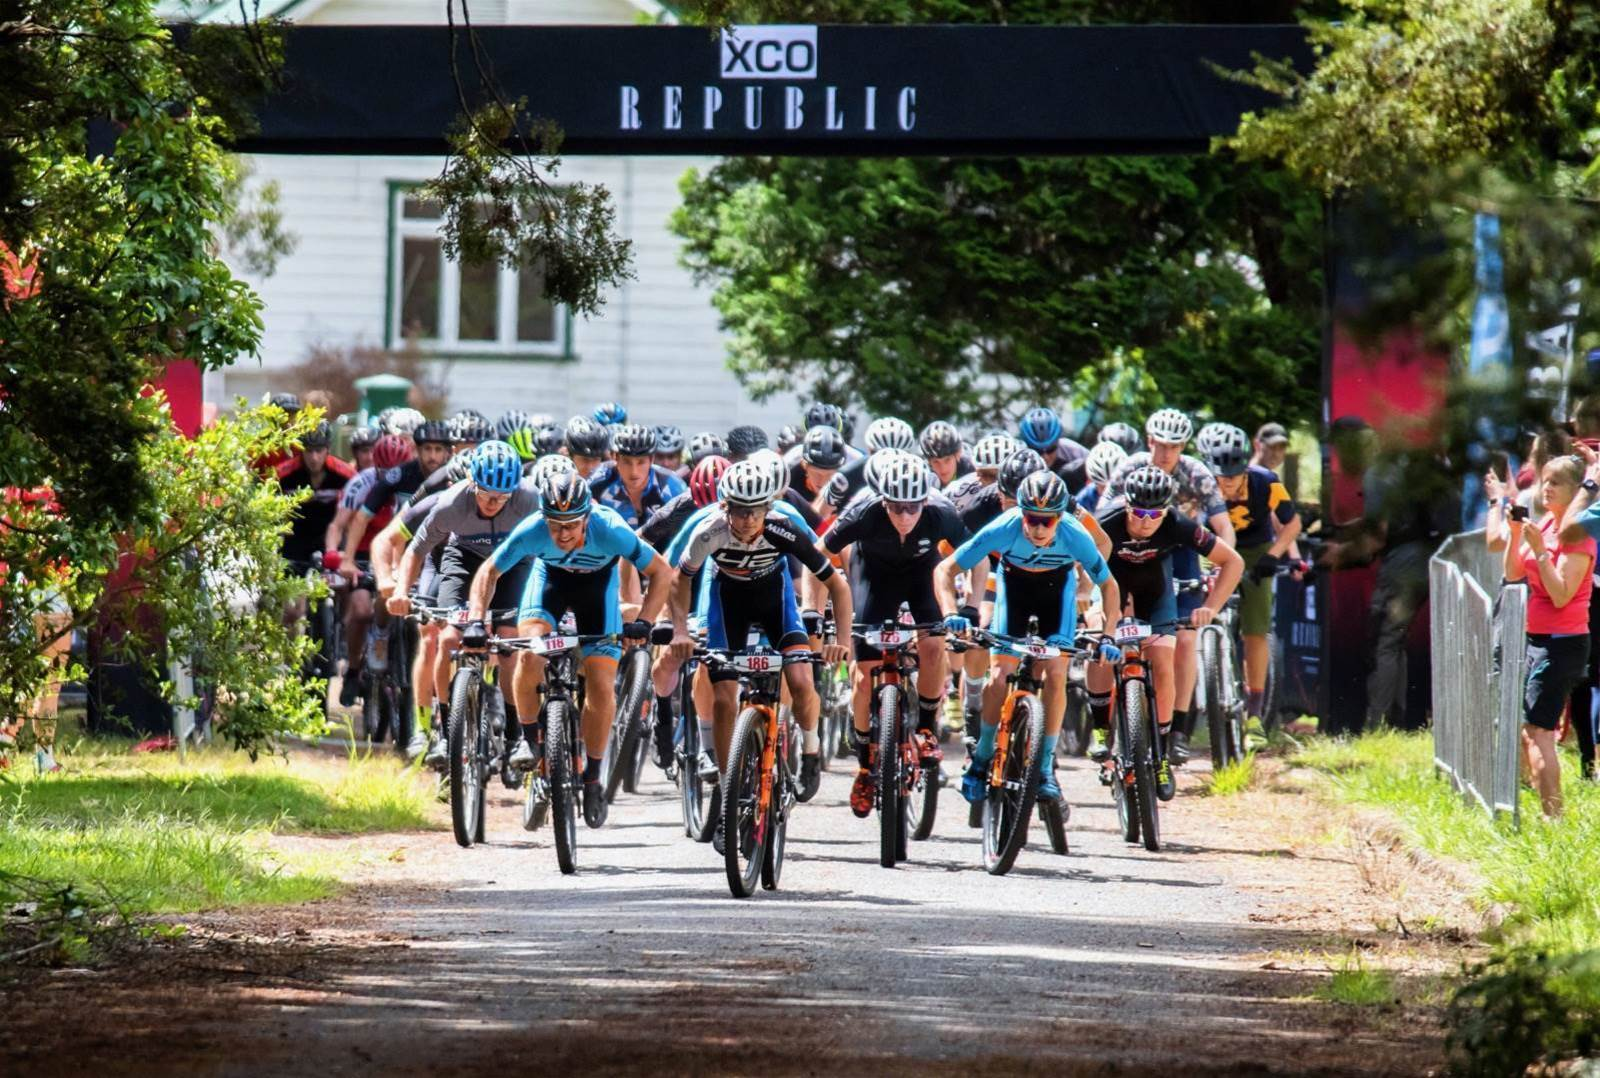 Shaw and Wilcox on top at XCO Republic